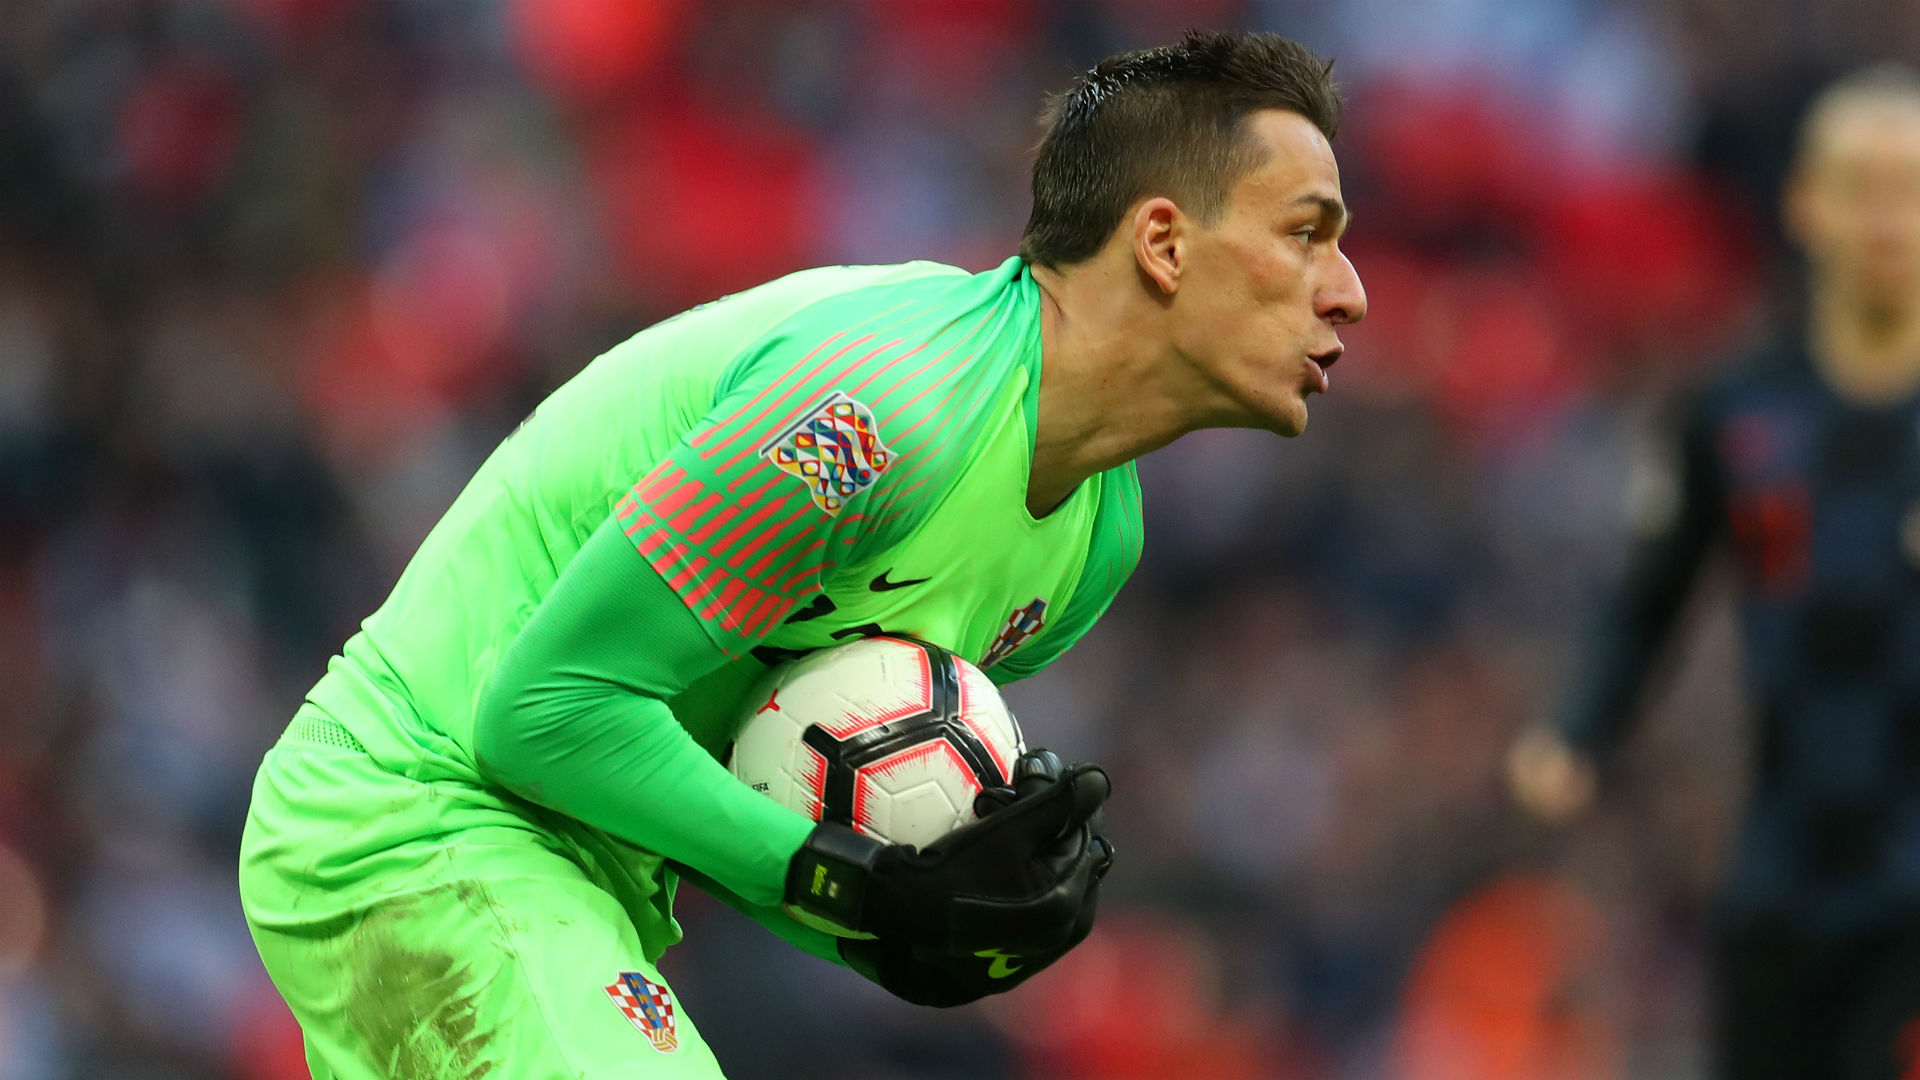 Croatia keeper Kalinic to join Aston Villa